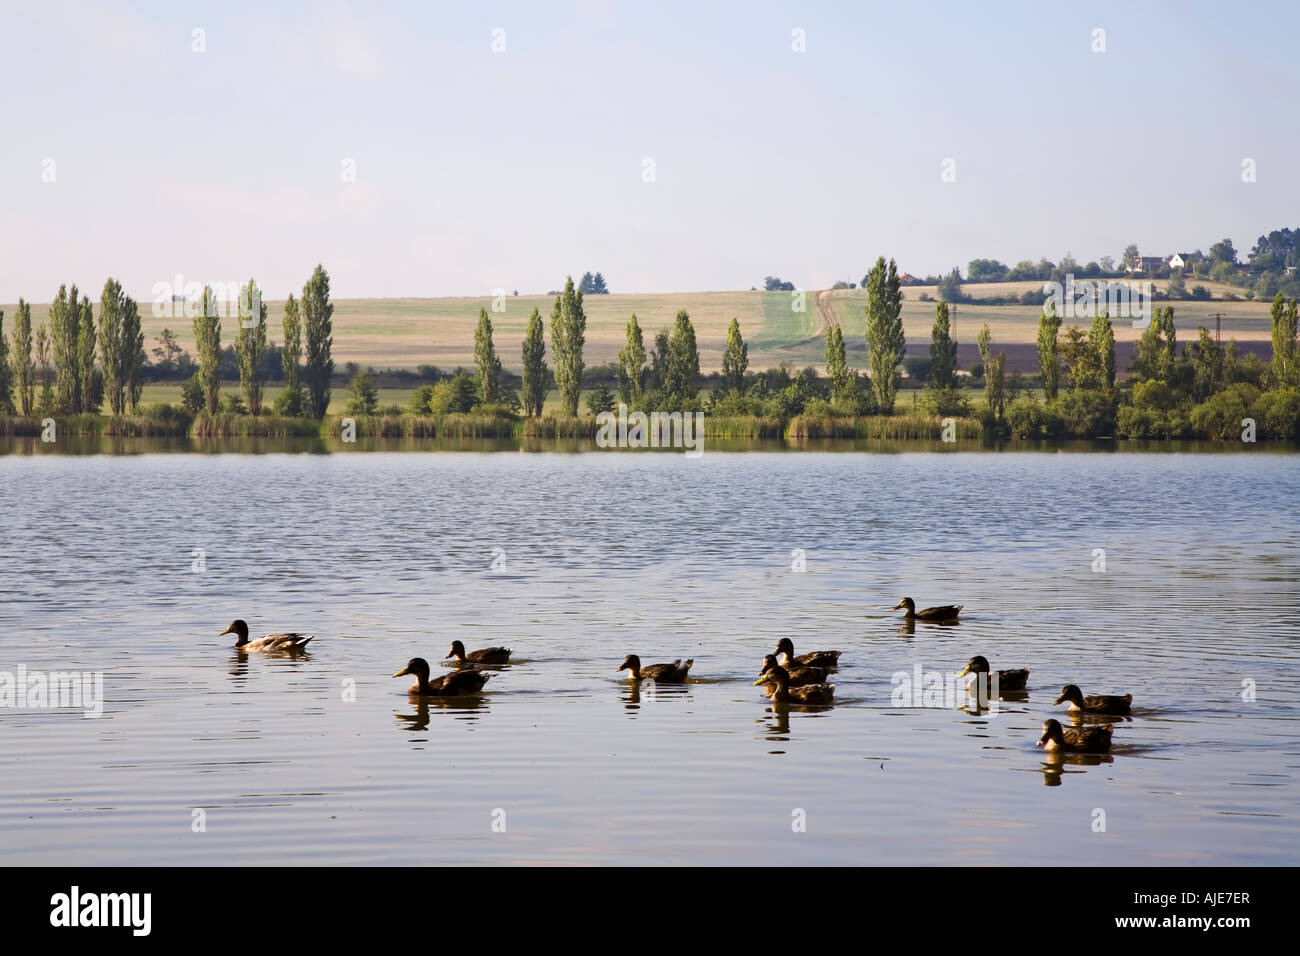 Ducks swimming on Velky Rybnik lake Plzen Czech Republic - Stock Image